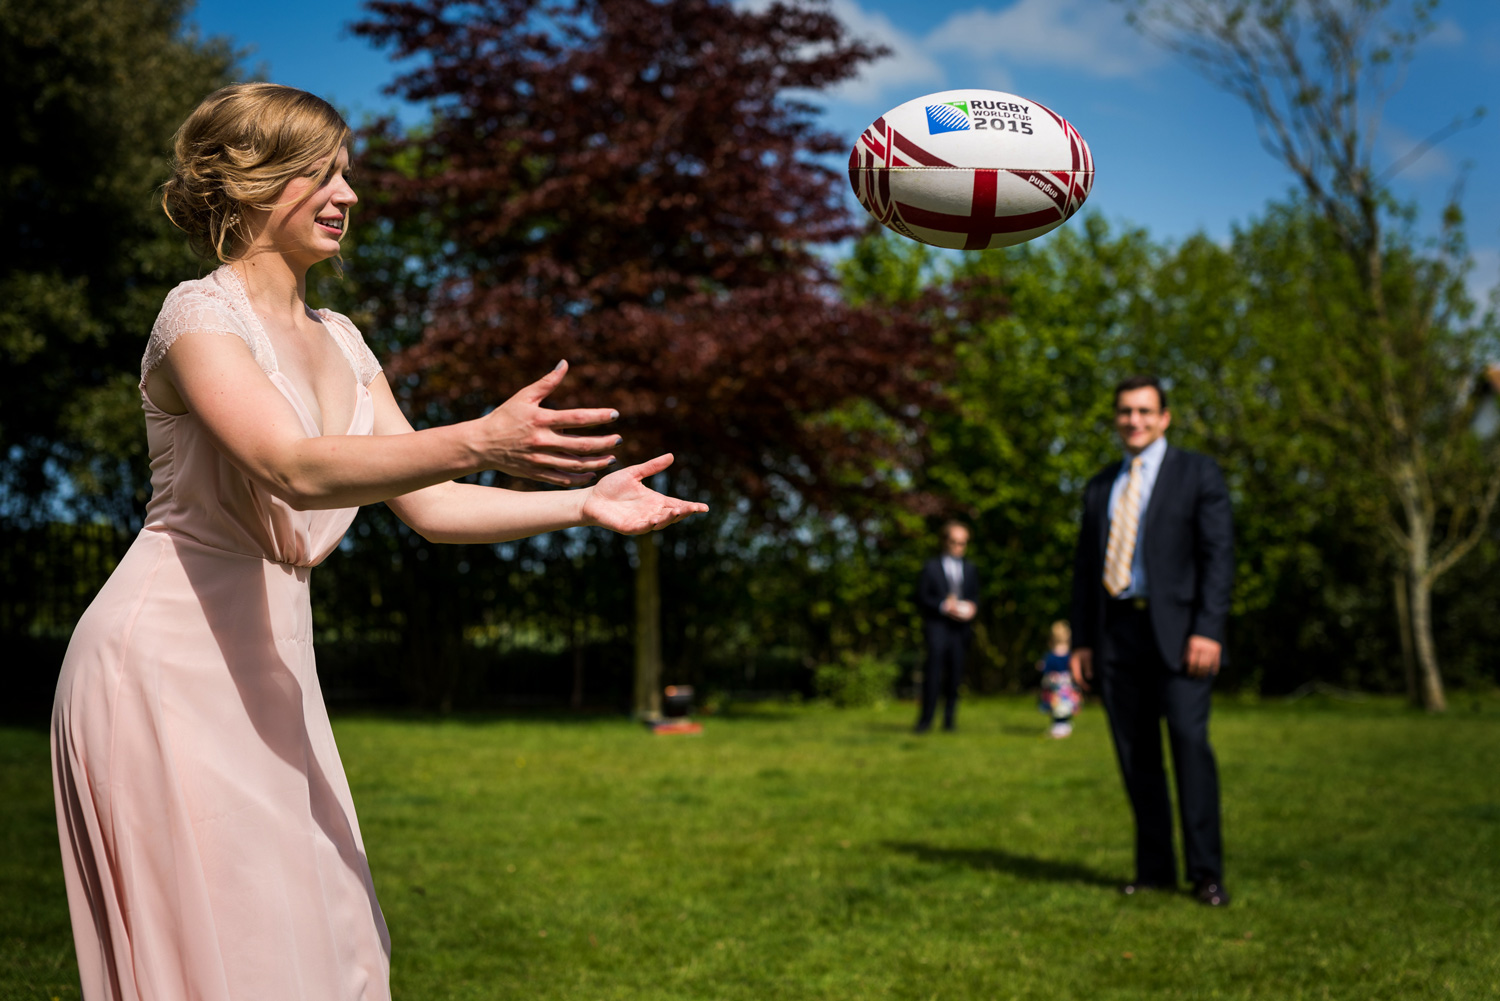 bridesmaid playing rugby